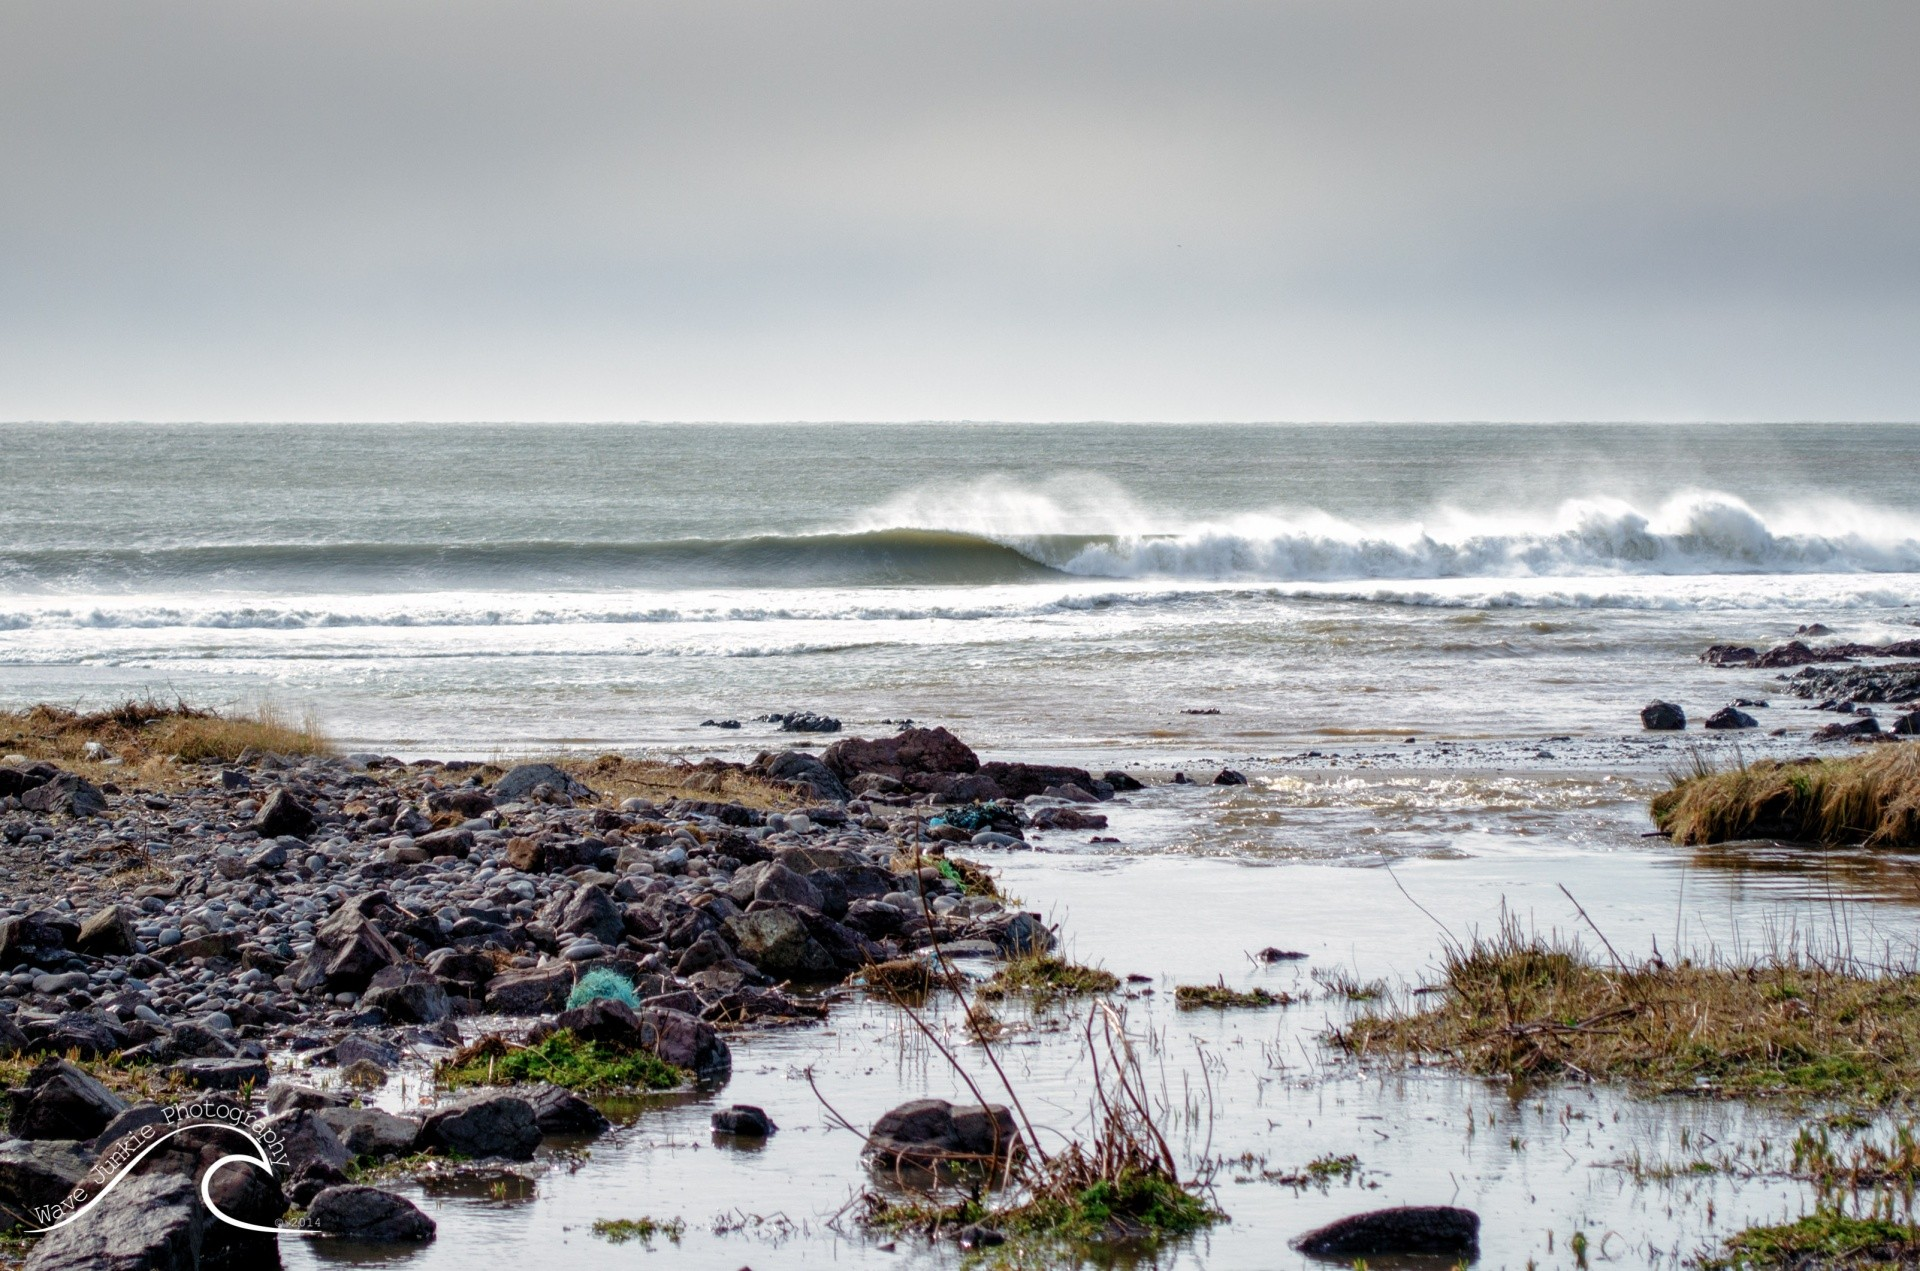 Matthew Loots's photo of Praa Sands